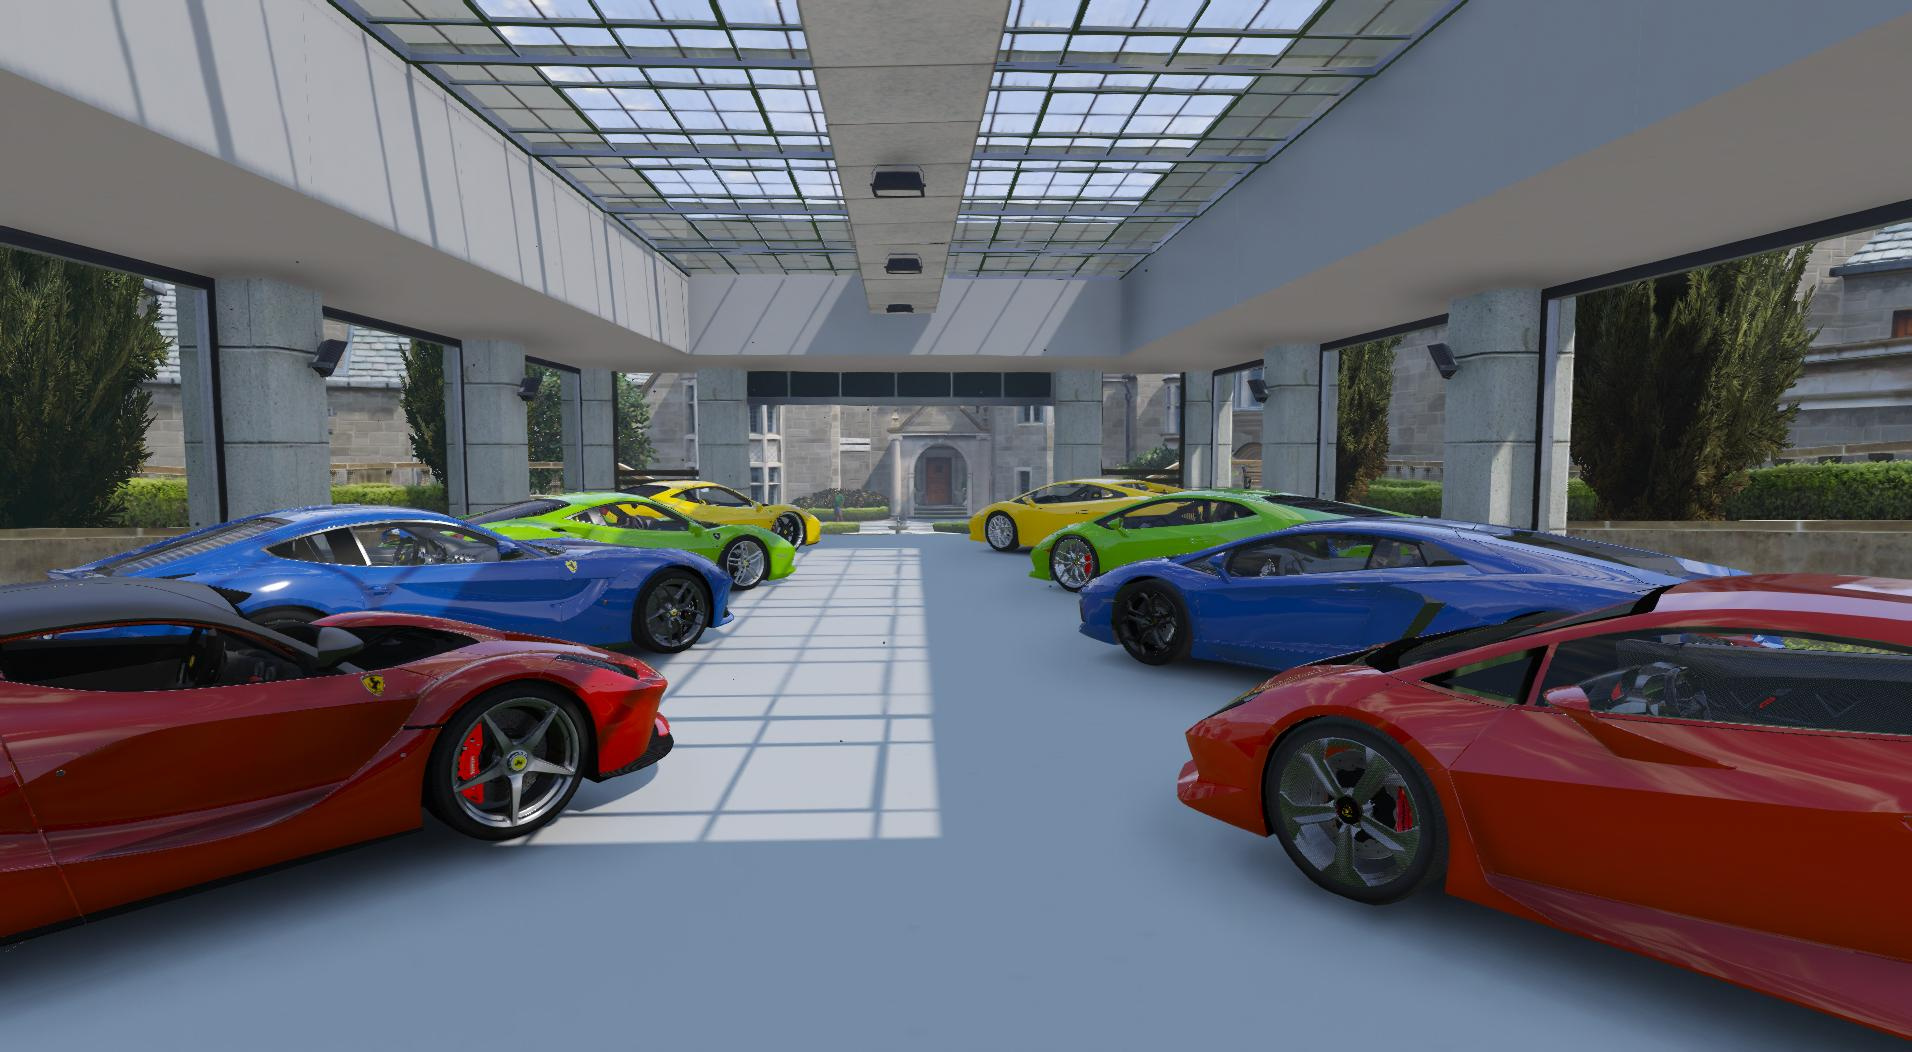 Gta 5 garage cars images home desain 2018 for Car garage